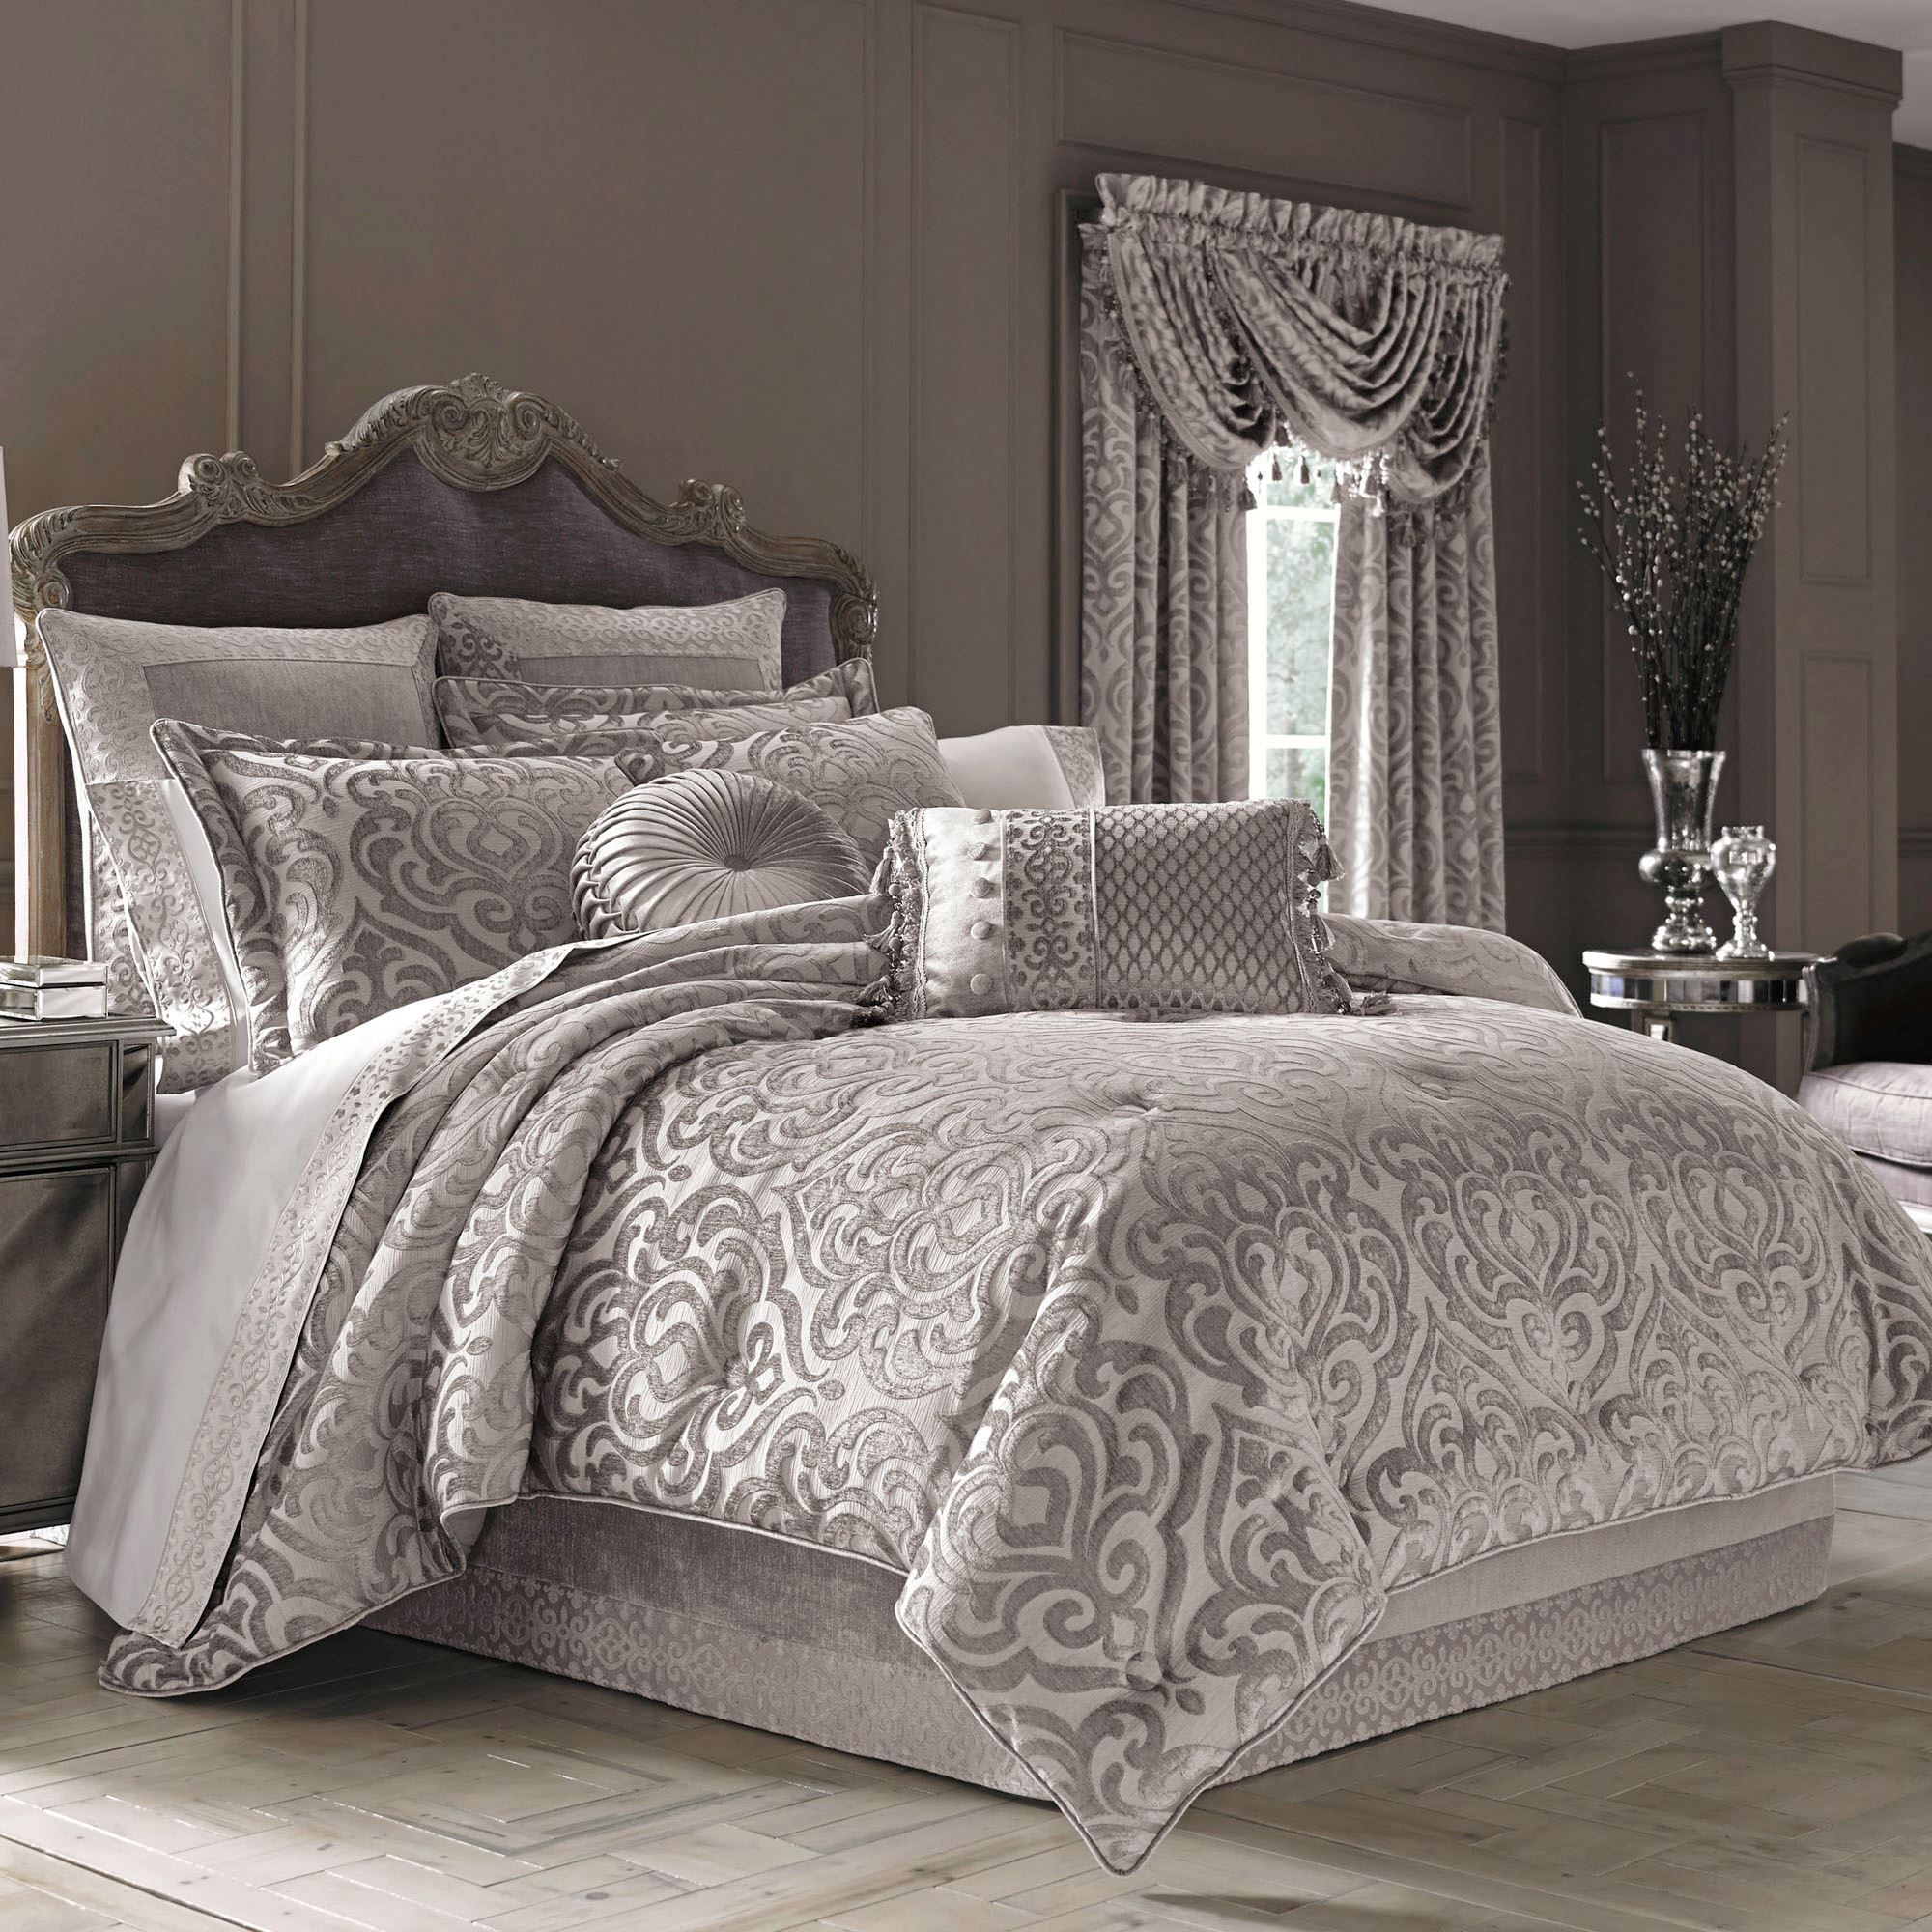 Sicily Comforter Set Silver Gray King Comforter Sets Comforter Sets Luxury Bedding